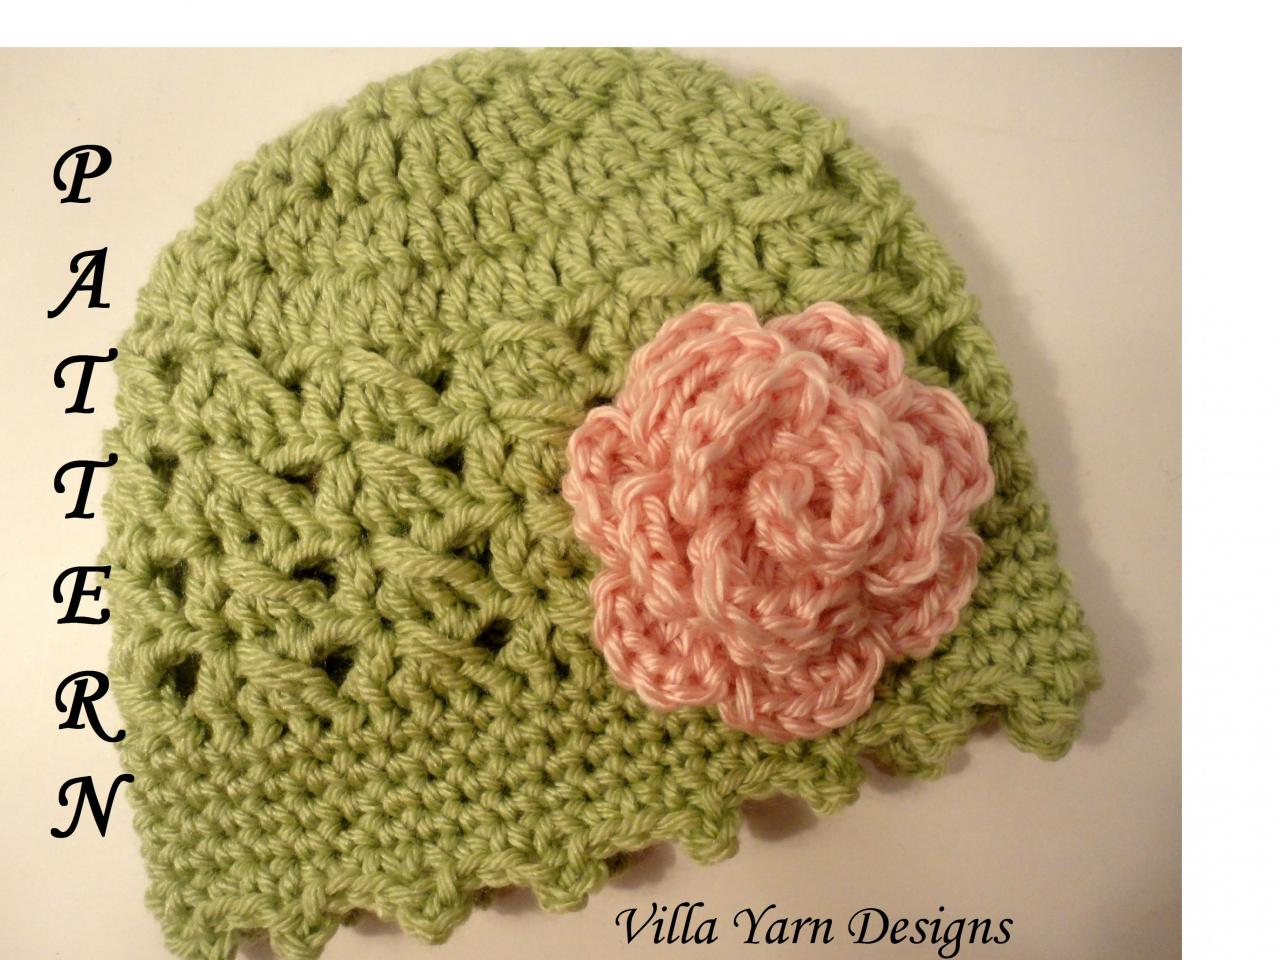 Crochet Baby Hat Pattern With Flower, Baby Girl, Newborn To 12 ...